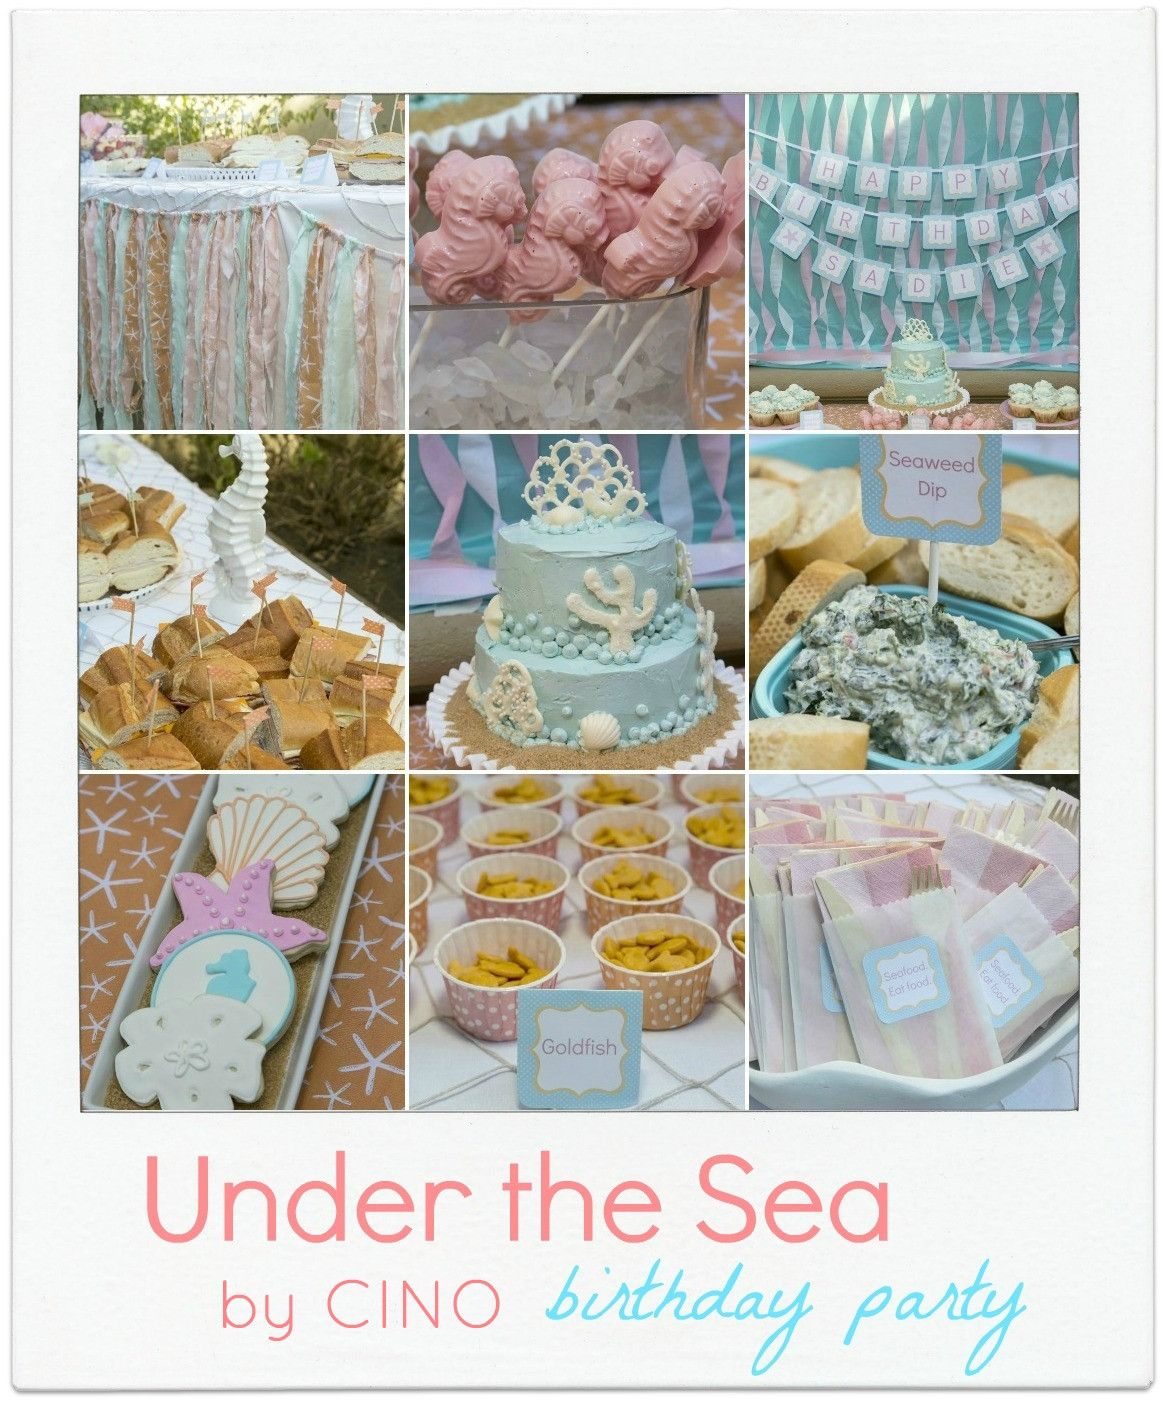 Best ideas about Under The Sea Birthday Party . Save or Pin Sa 's Under the Sea party Now.